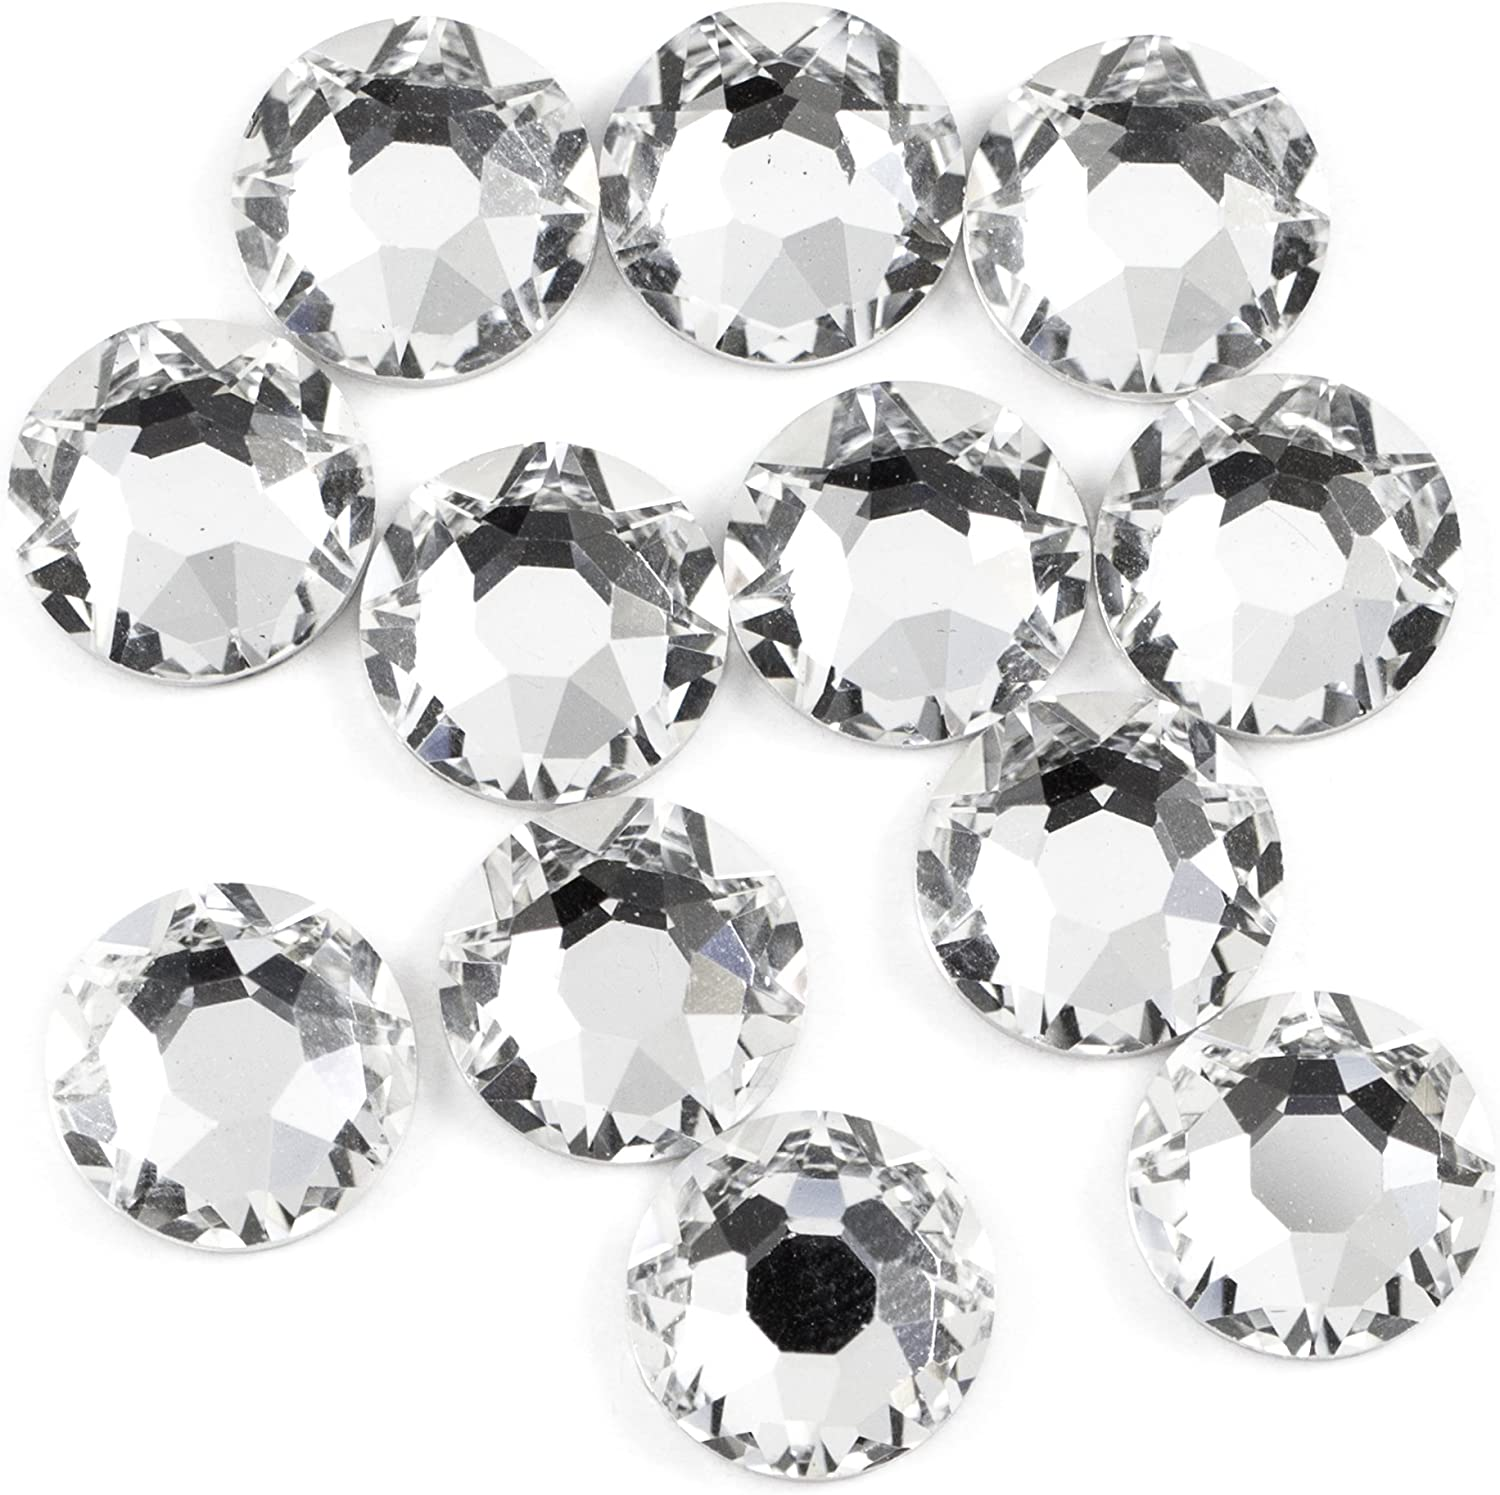 Flat back Crystal 2058 Swar Rhinestone No Hotfix Round SS16 4mm 72 pcs